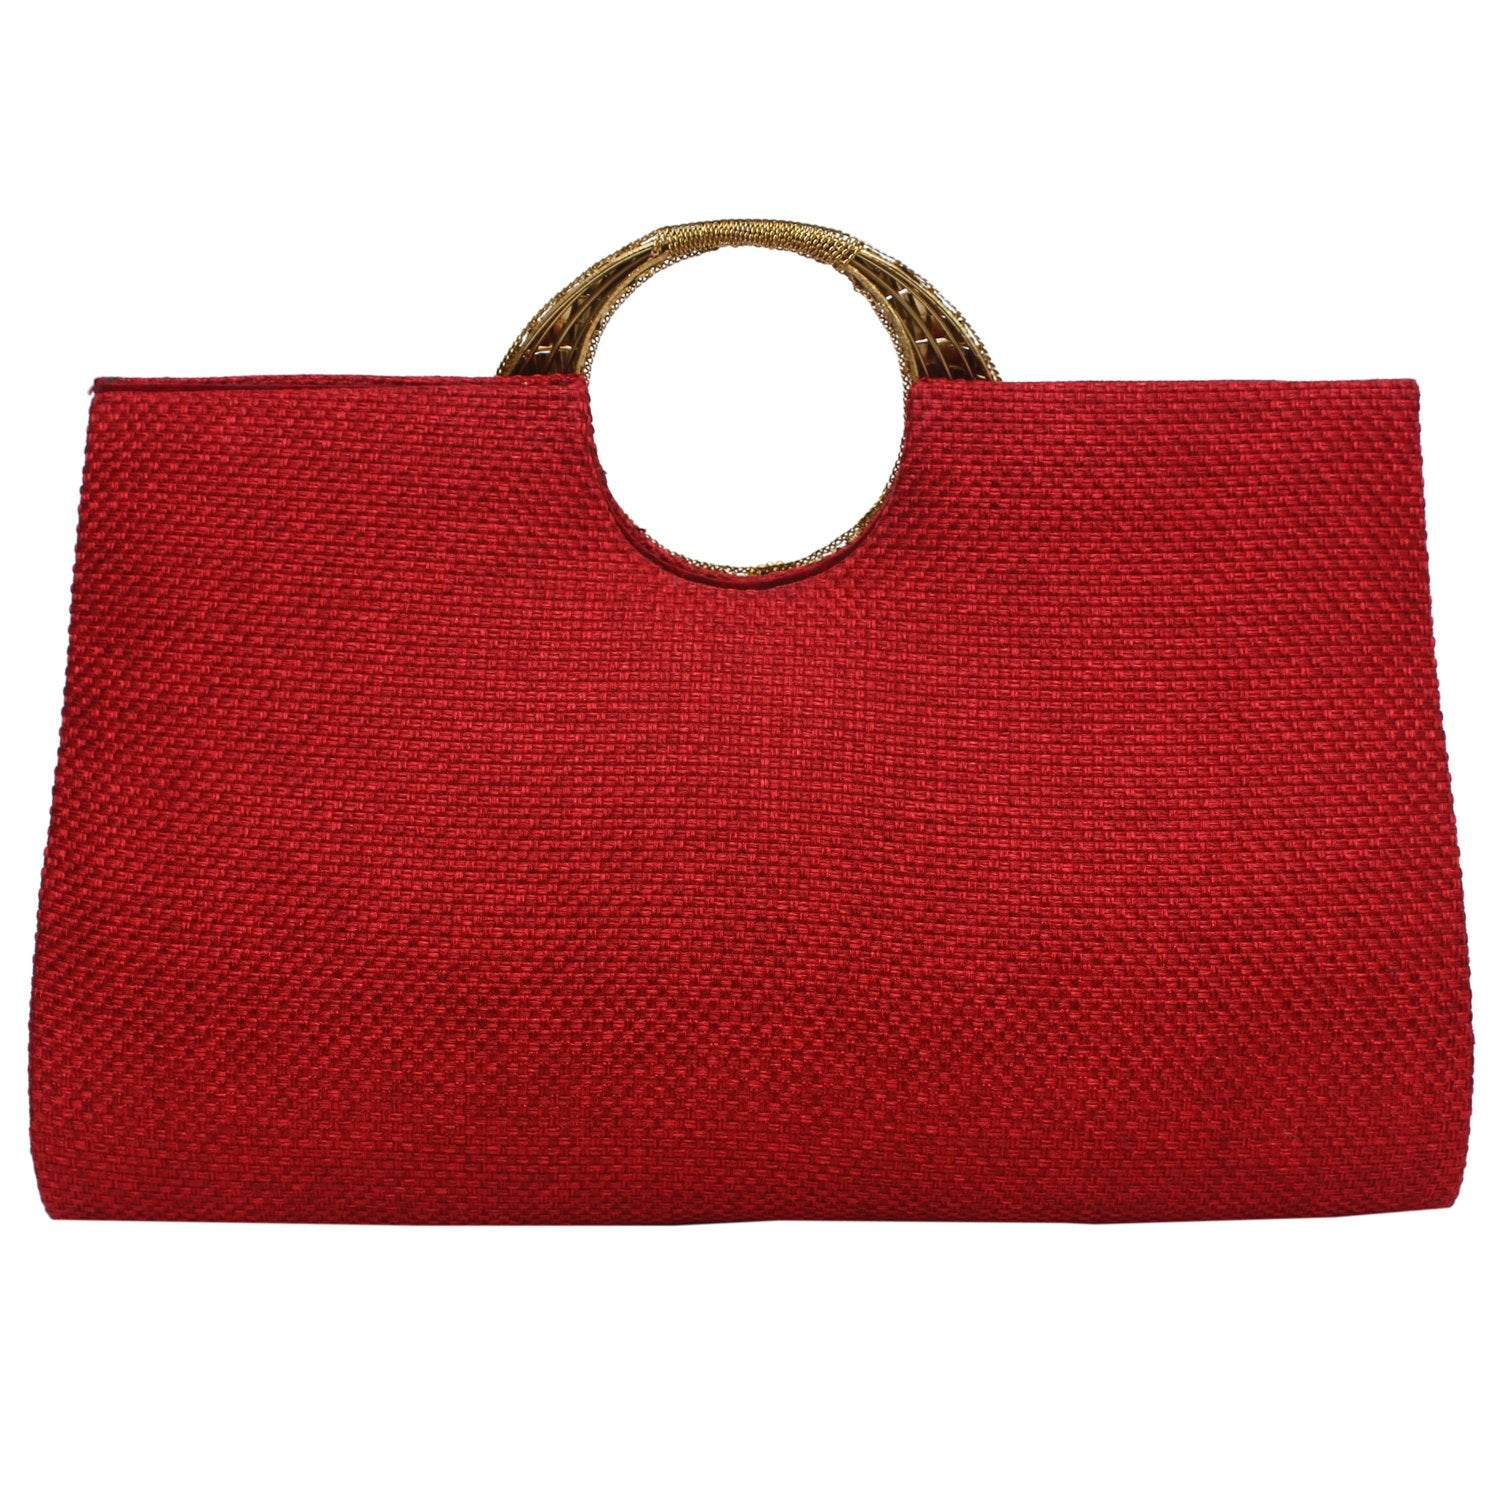 Ethnic Beads and Stylish Stone Jute Clutch (Maroon) - Bagaholics Gift